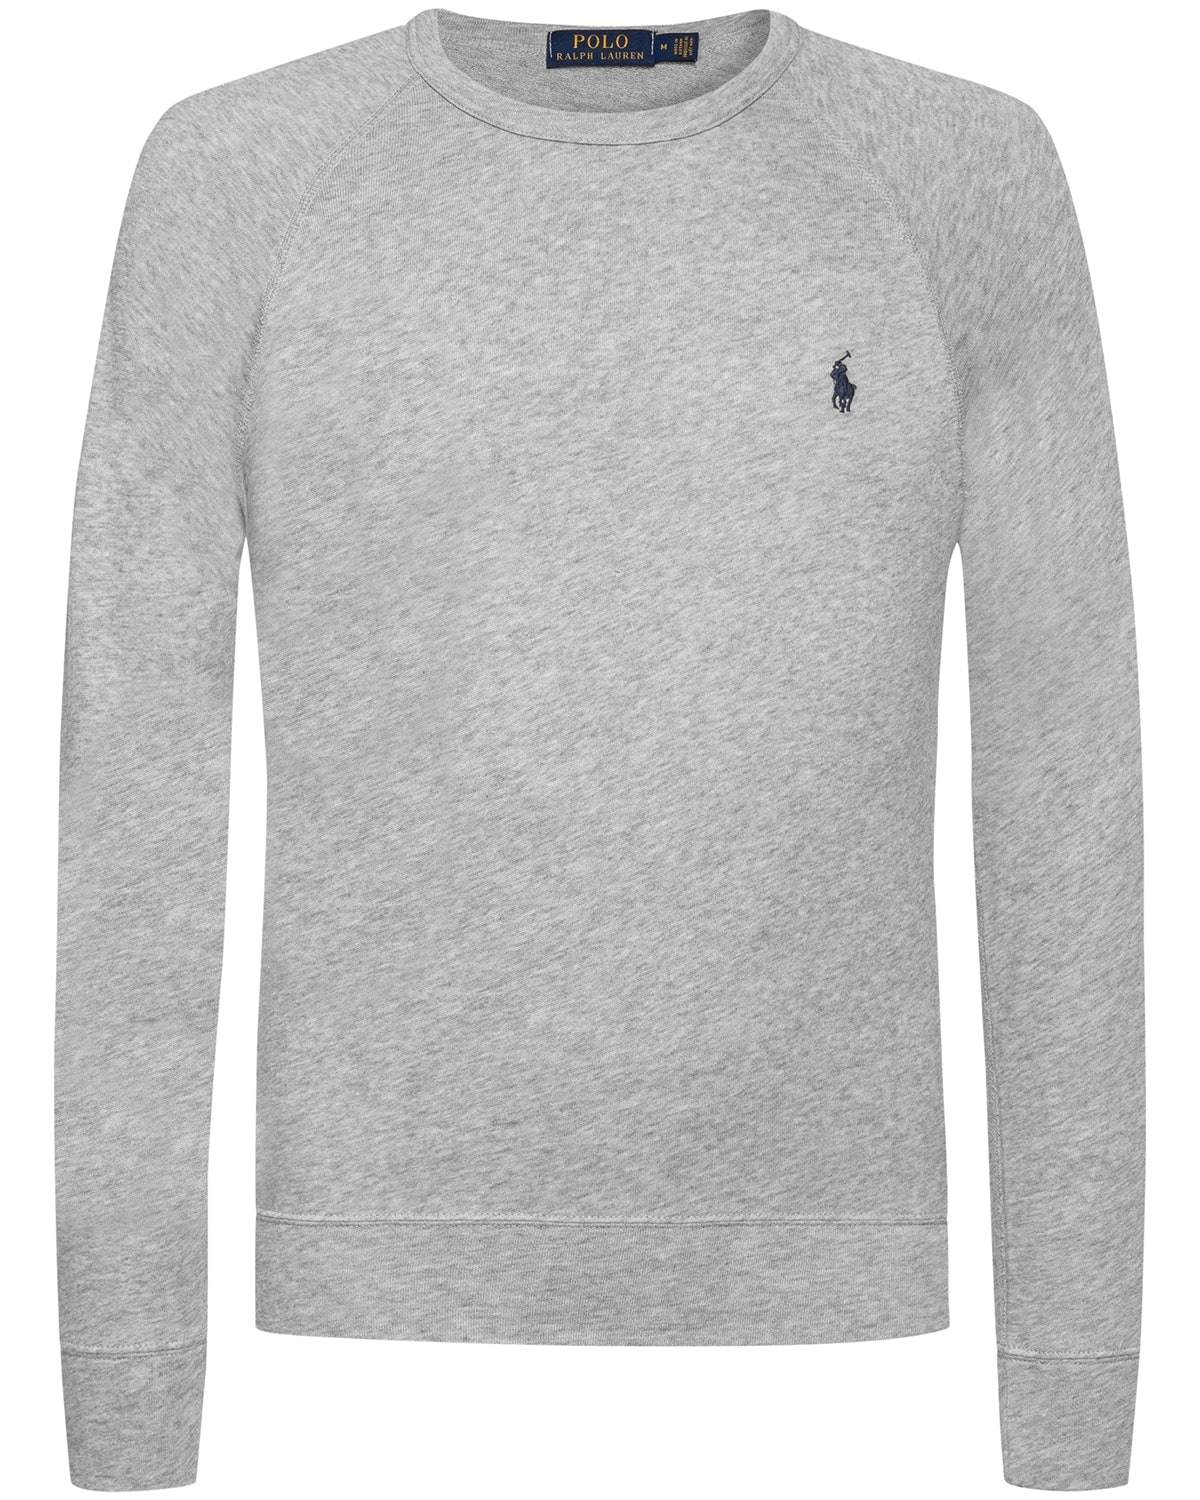 Polo Ralph Lauren, Sweatshirt, grau, Casual Look, Menswear 2018, Lodenfrey, Munich